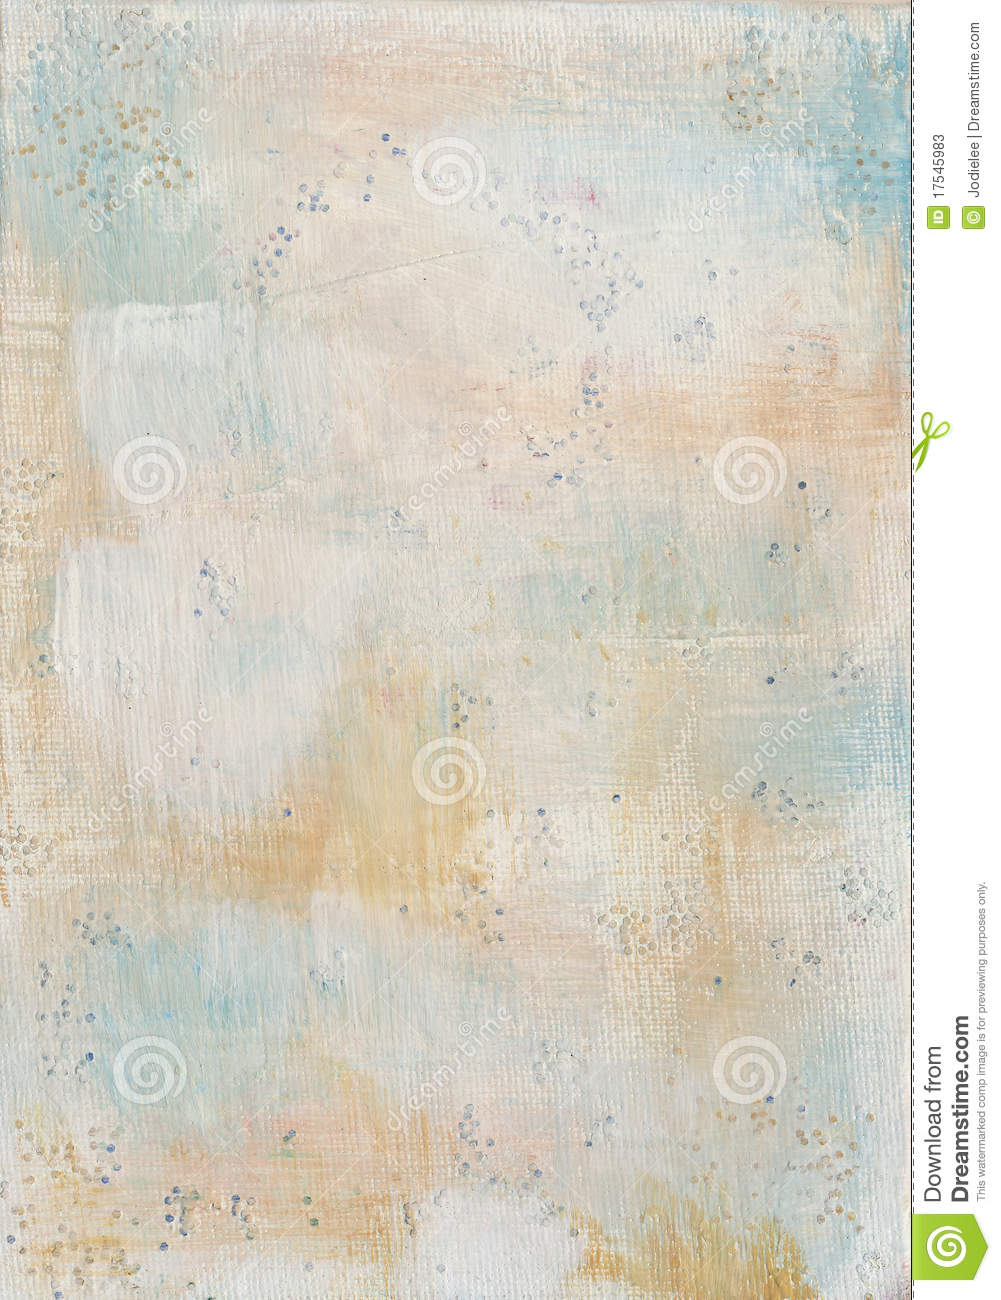 Vintage Shabby Canvas Painted Textured Background Stock